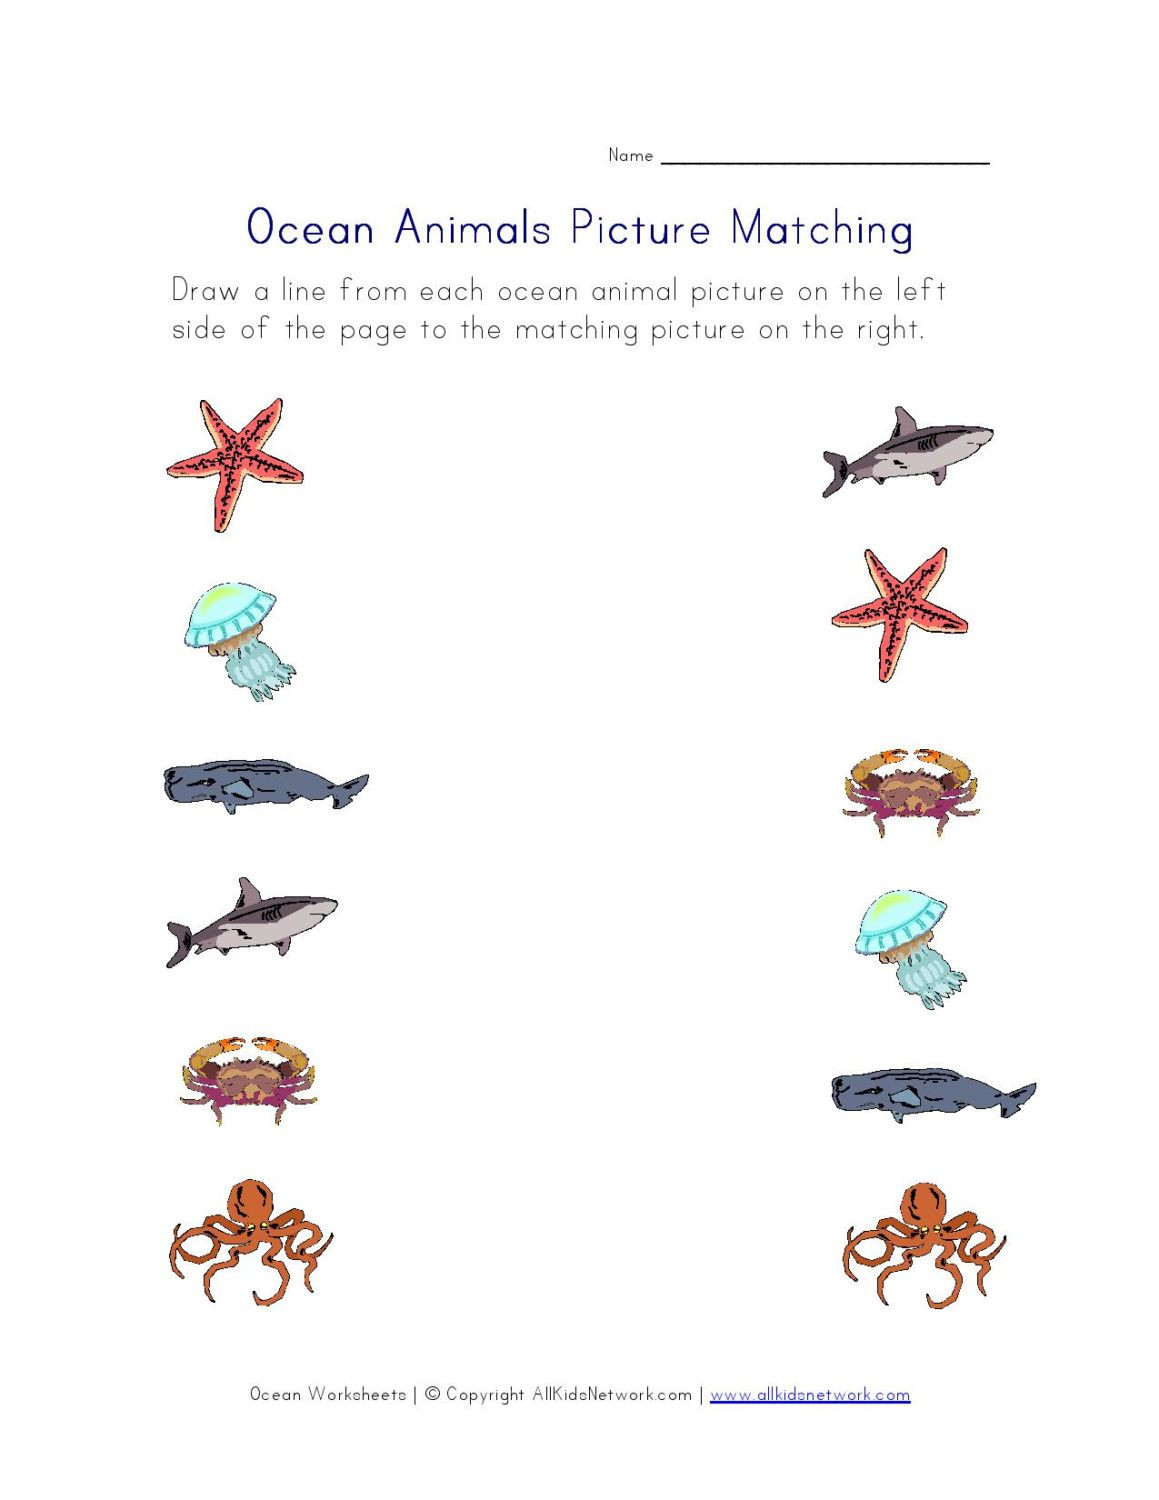 Ocean Worksheets for Preschool Activities and Worksheets for Preschoolers Pacific Beach